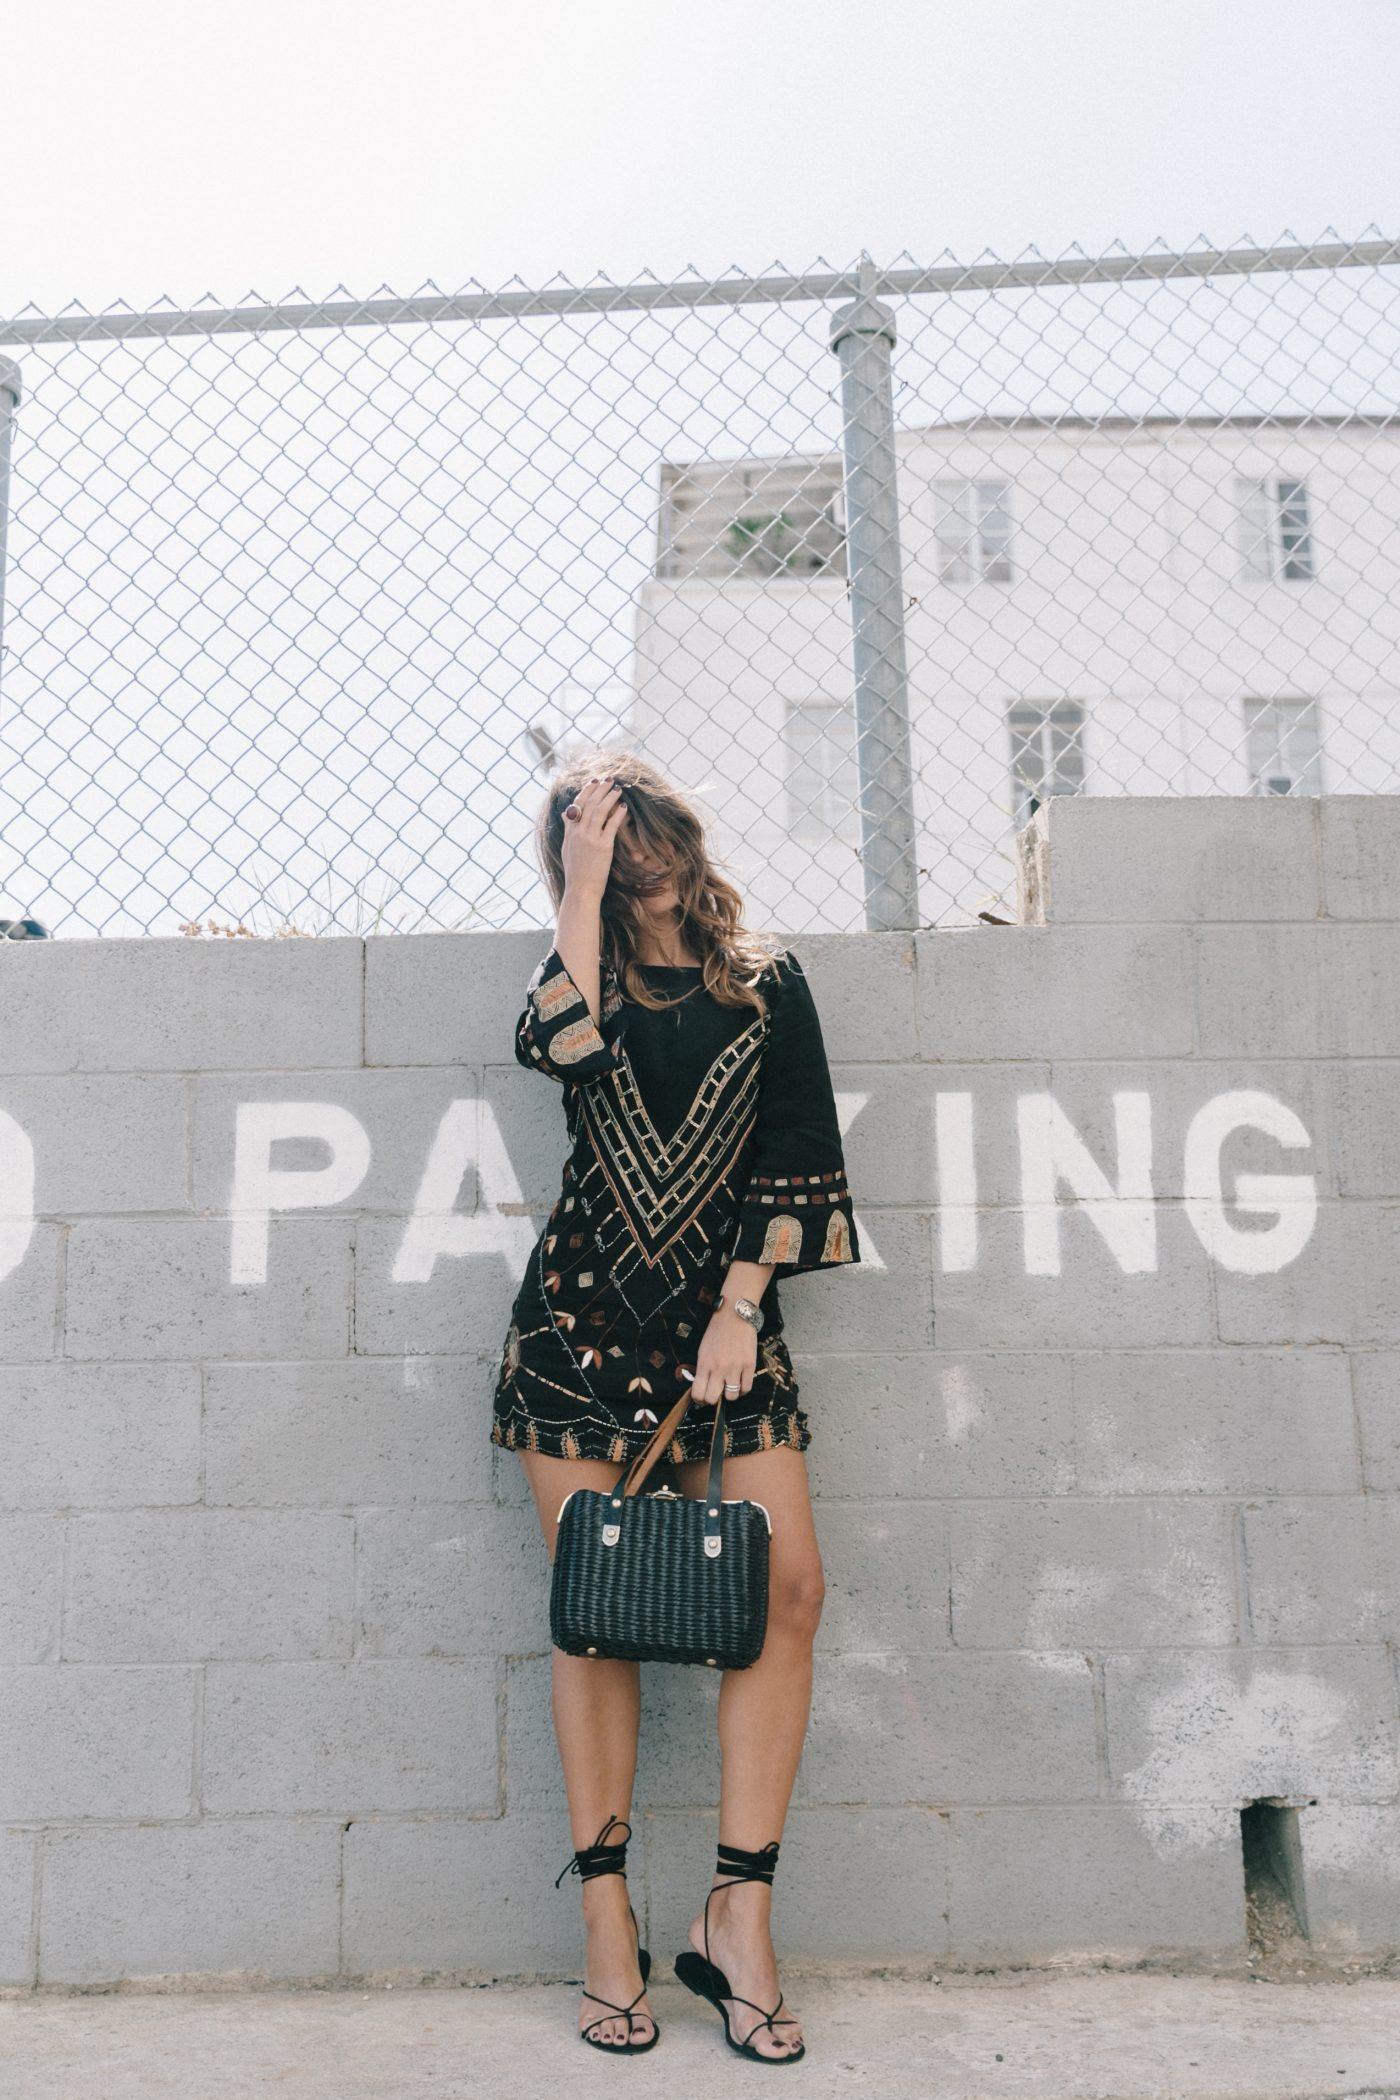 Boho_Dress-Jens_Pirate_Booty-Black_Beaded_Dress-Lace_Up_Sandals-Los_Angeles-Outfit-Collage_Vintage-50